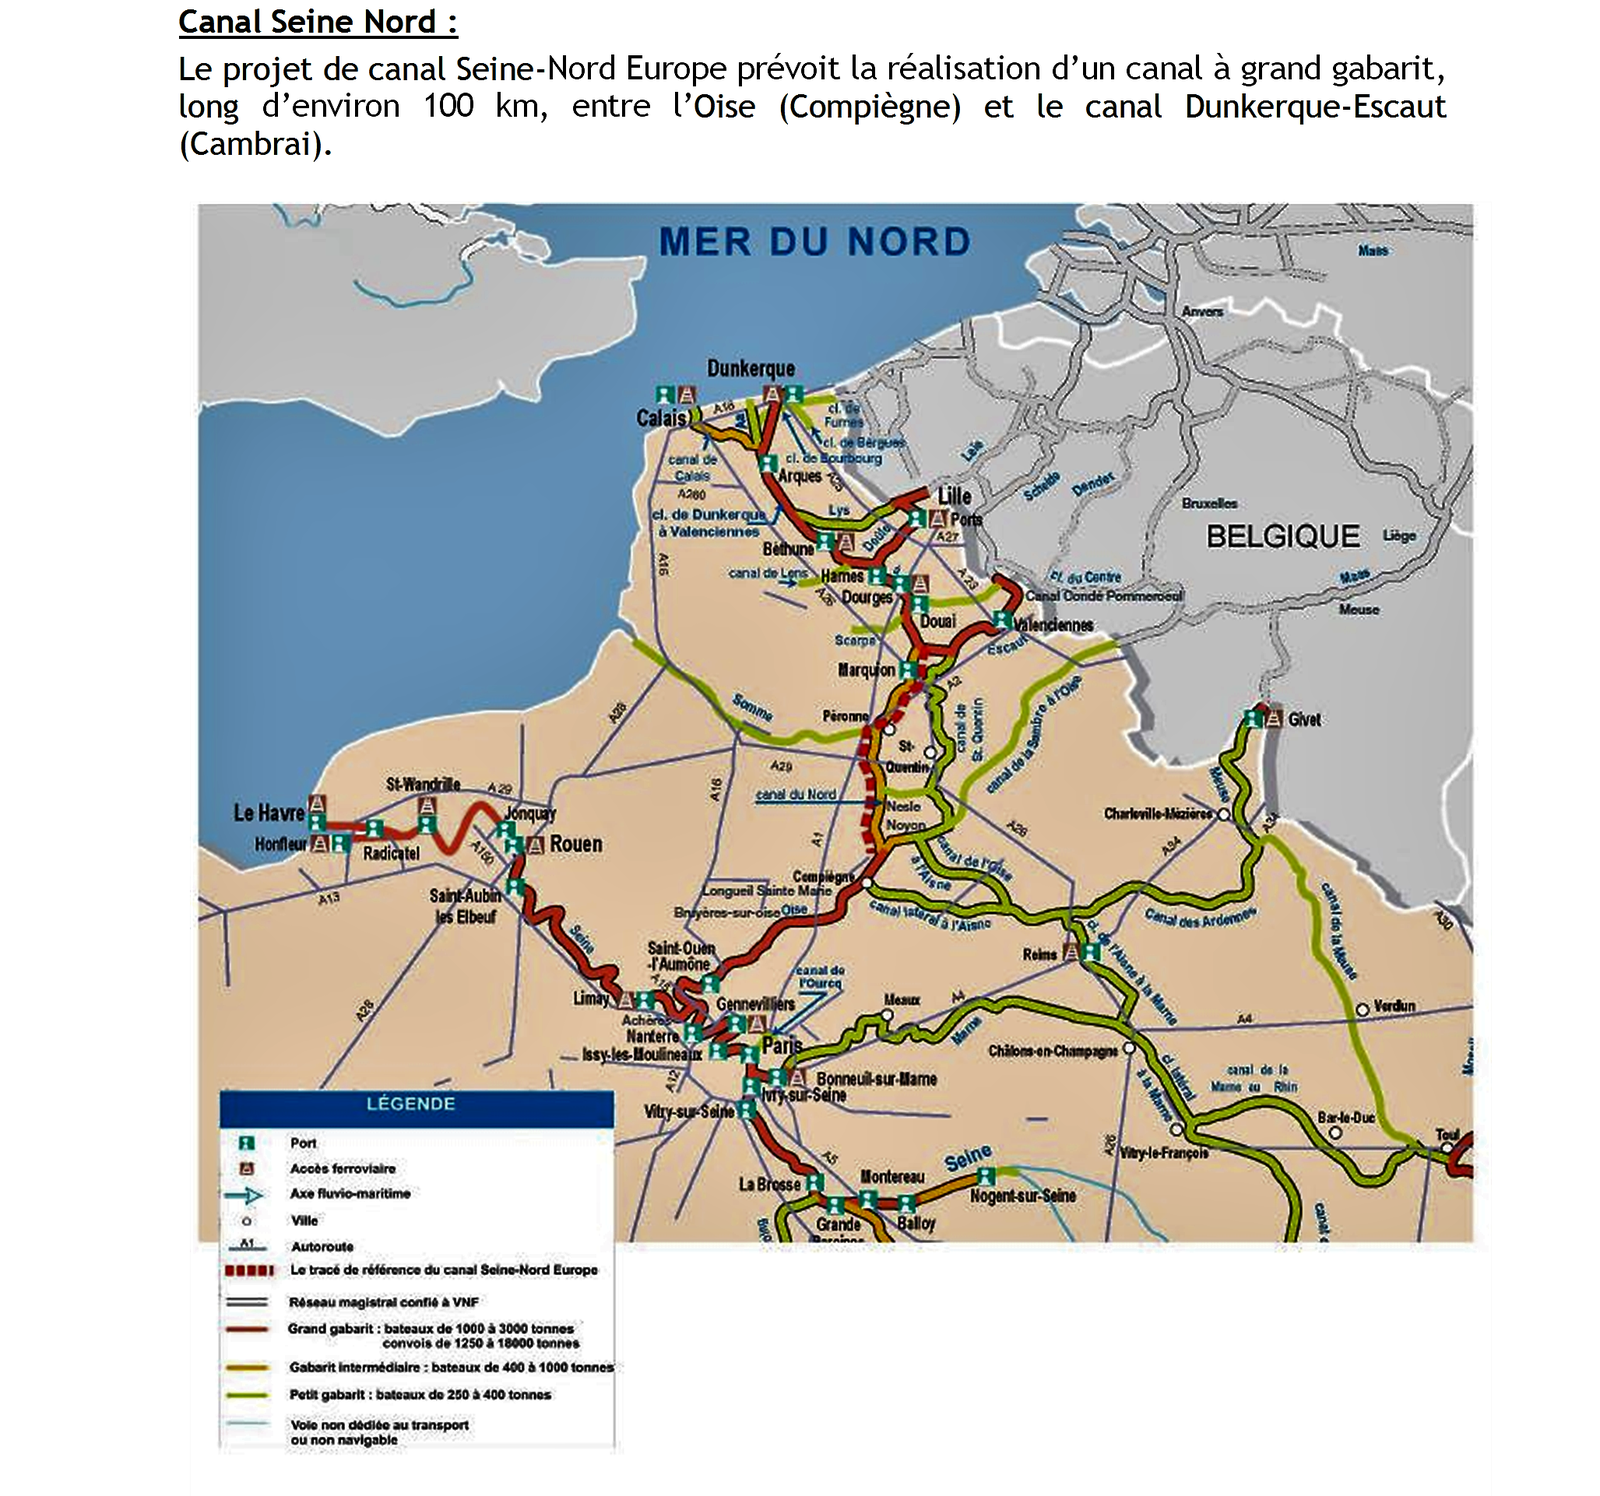 Le projet canal Seine-Nord